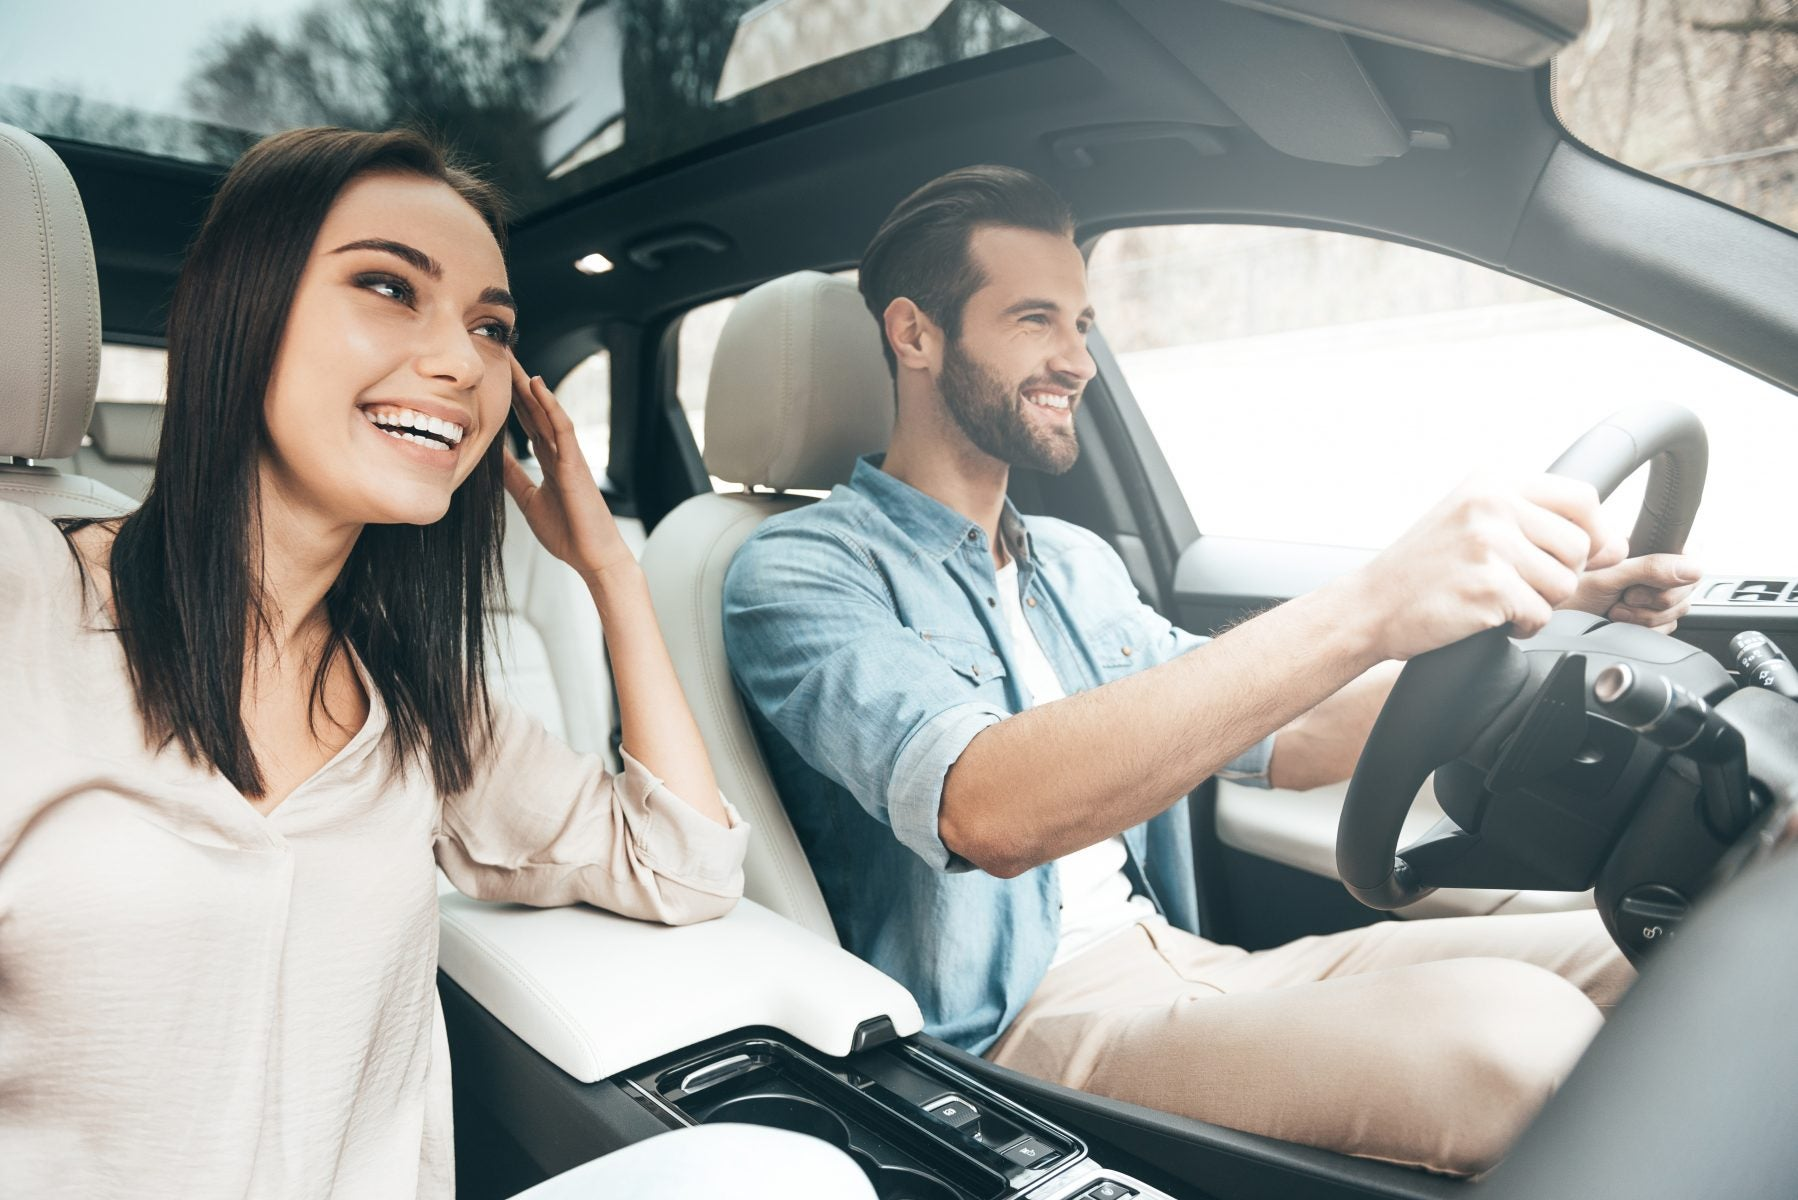 7 things to understand before relying on credit card rental car insurance – How many do you already know?